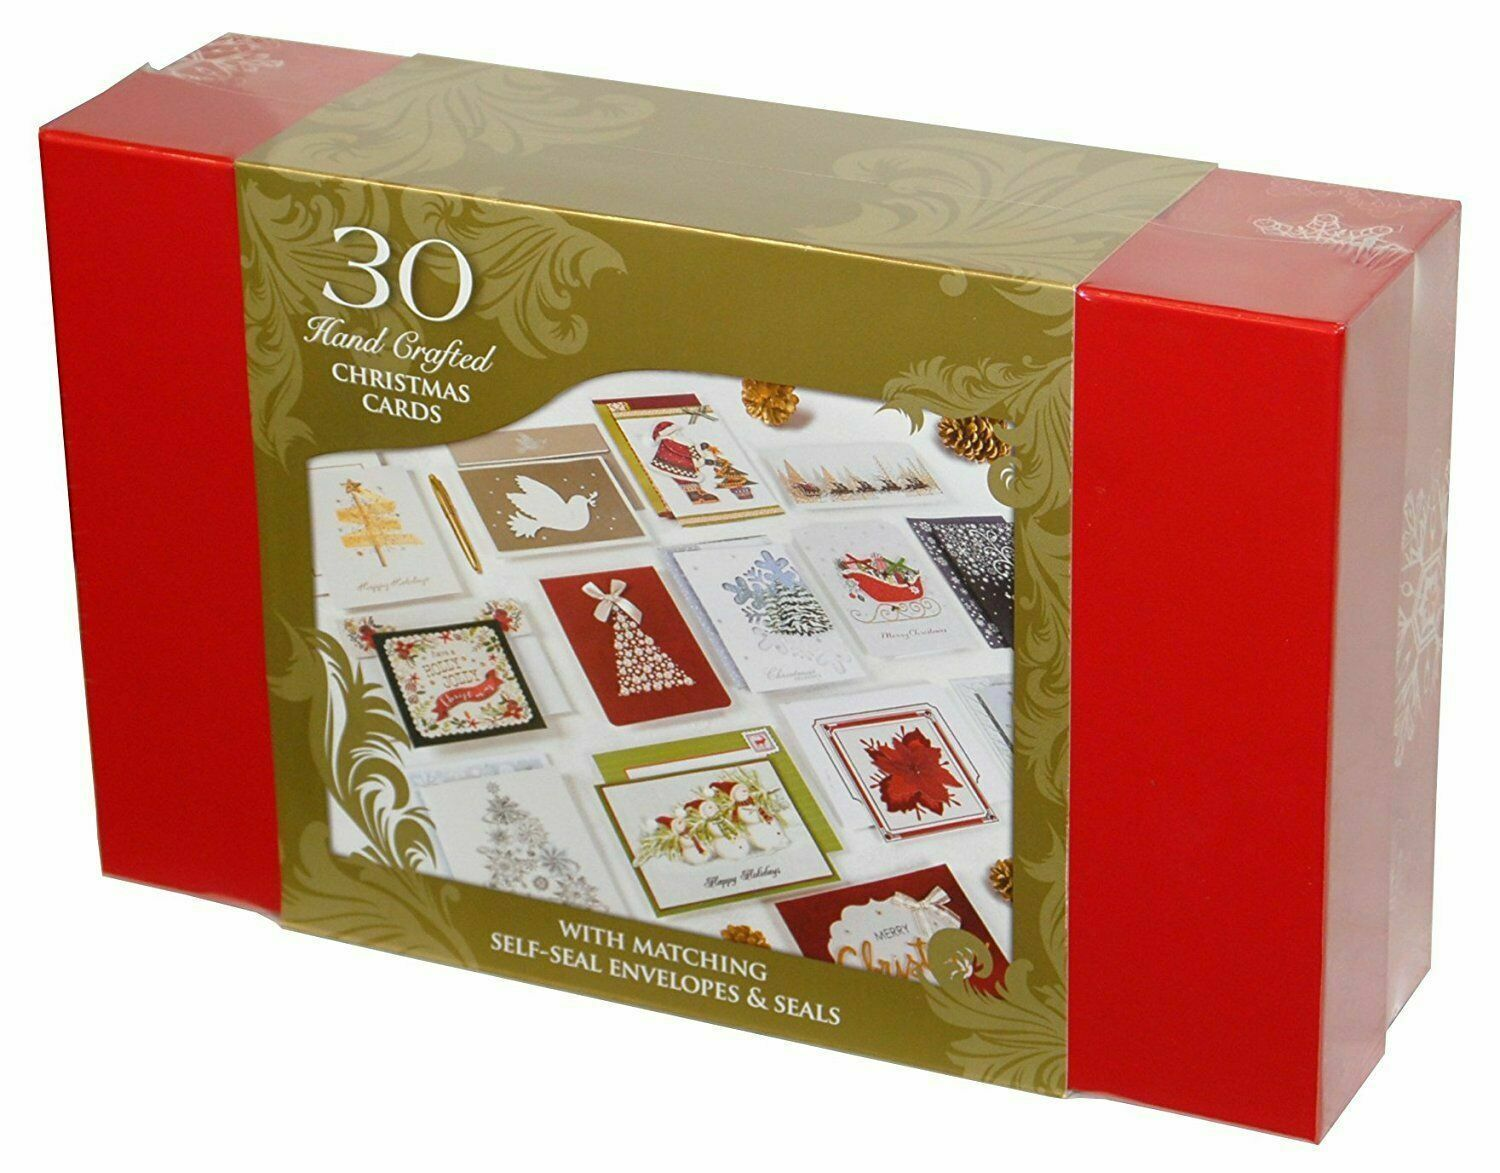 30 Hand Crafted Christmas Cards with Matching Self Seal Envelopes & Seals